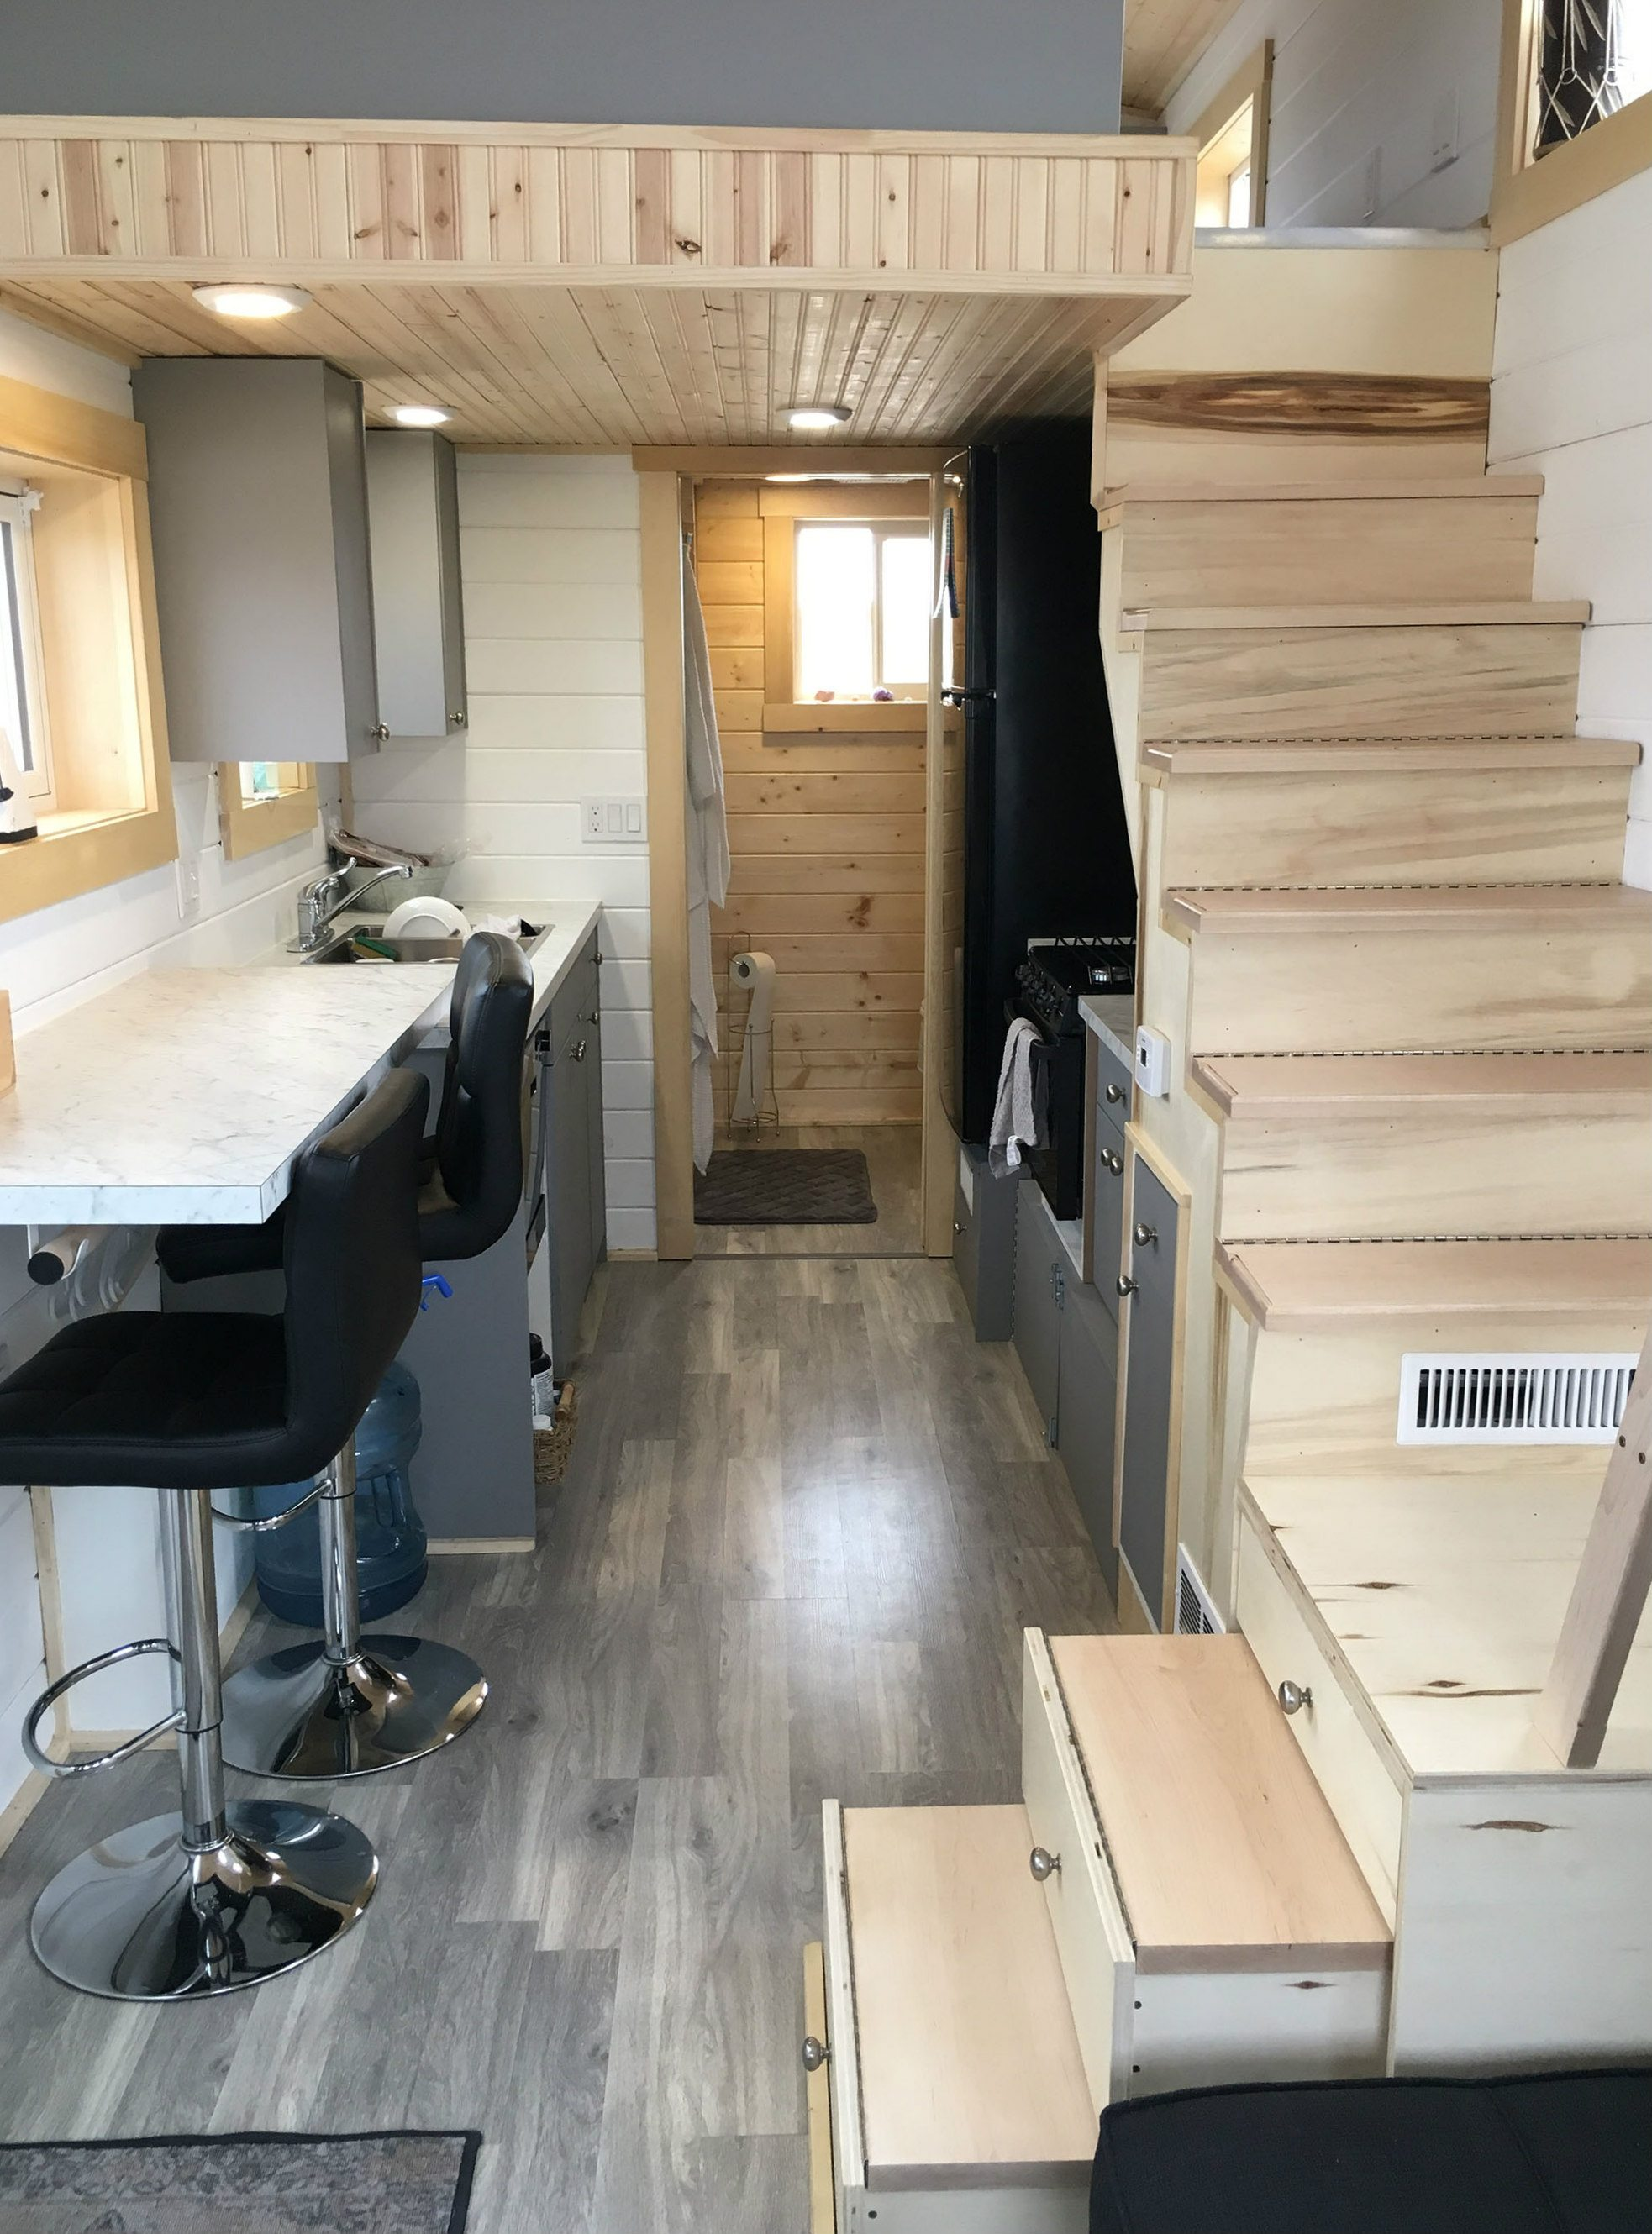 Discover If Tiny Home Living Could Work For You At This Calgary Event Urbanized